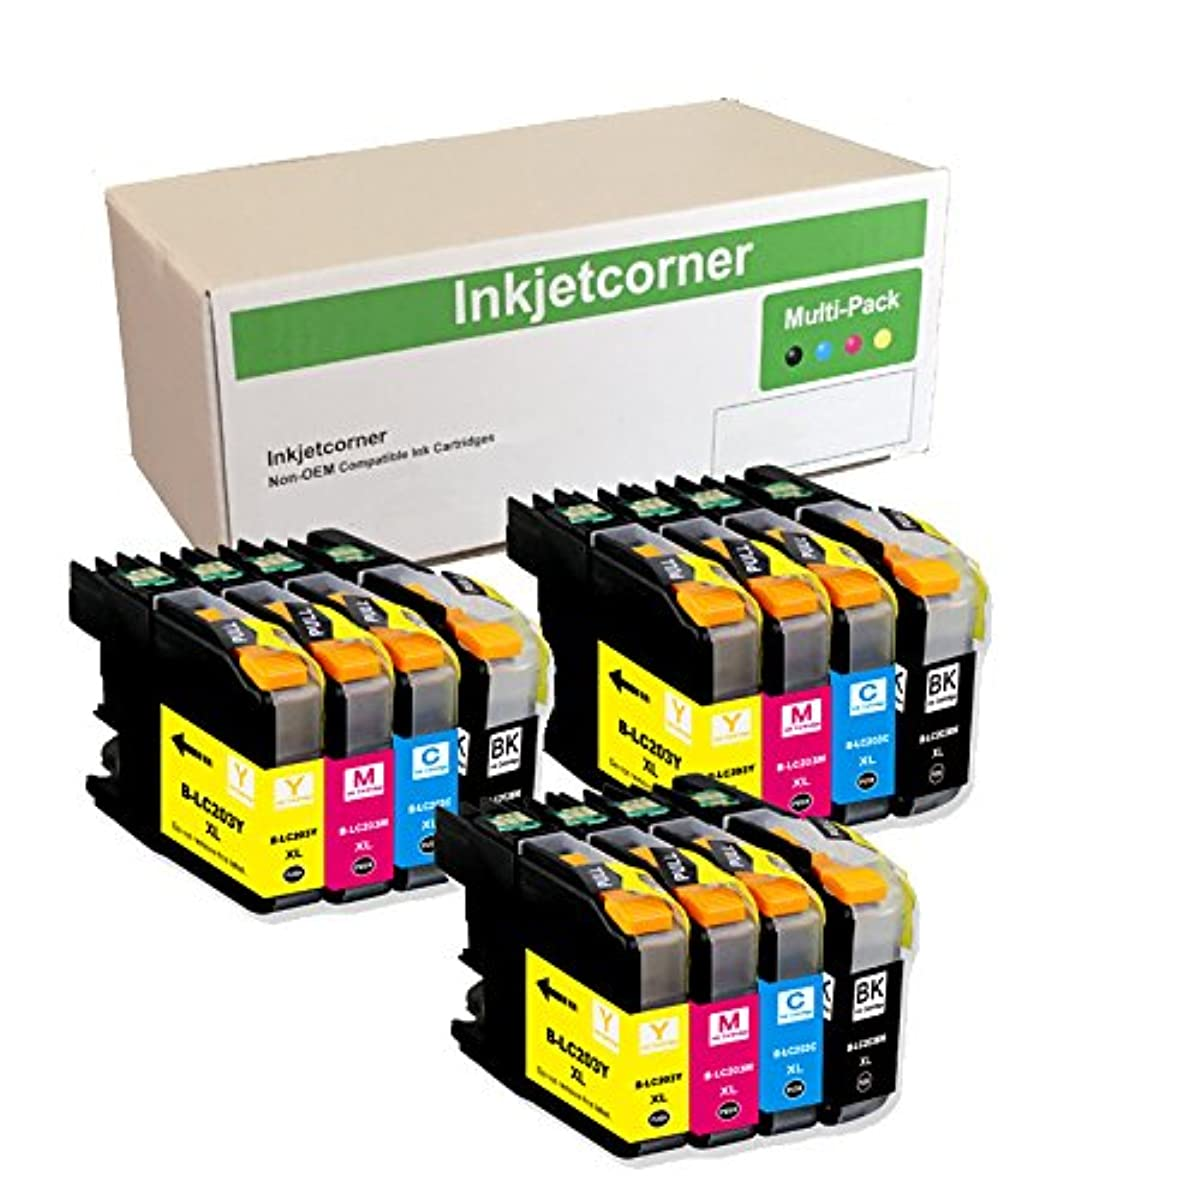 Inkjetcorner Compatible Ink Cartridges Replacement for LC203 LC203XL for use with MFC-J460DW MFC-J480DW MFC-J485DW MFC-J680DW MFC-J880DW MFC-J885DW (3 Black 3 Cyan 3 Magenta 3 Yellow, 12-Pack)